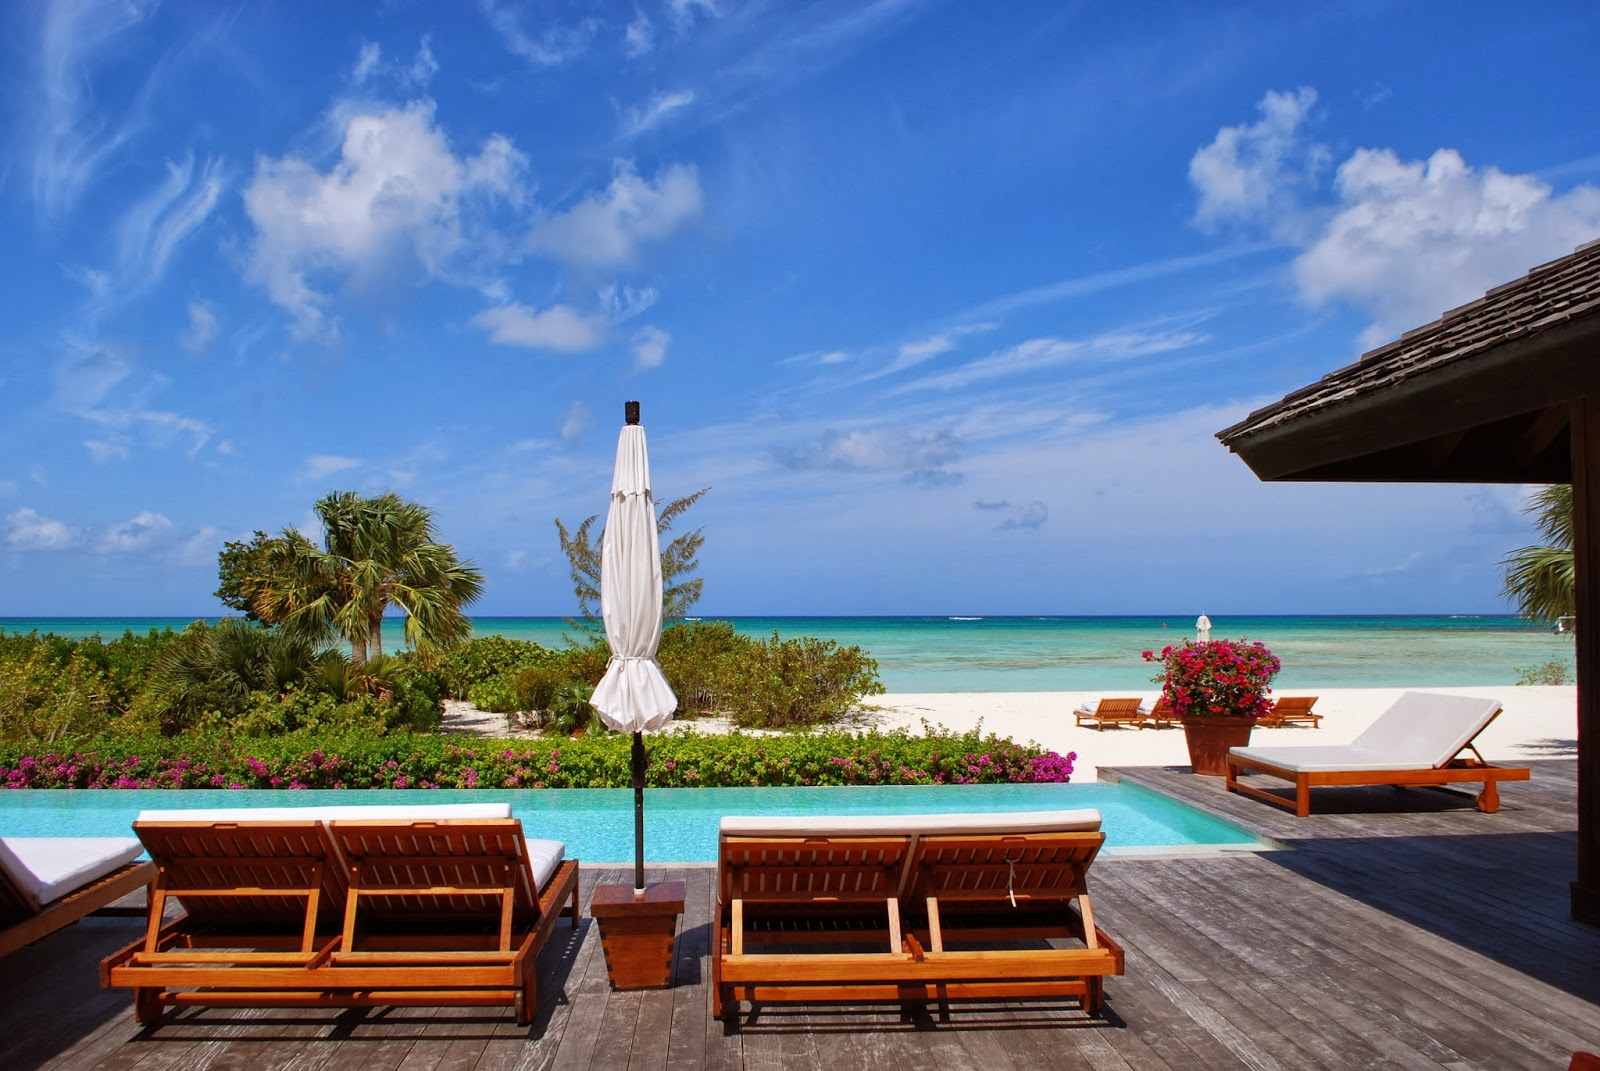 Wallpaper Beauty Of Nature Quot Turks And Caicos Islands